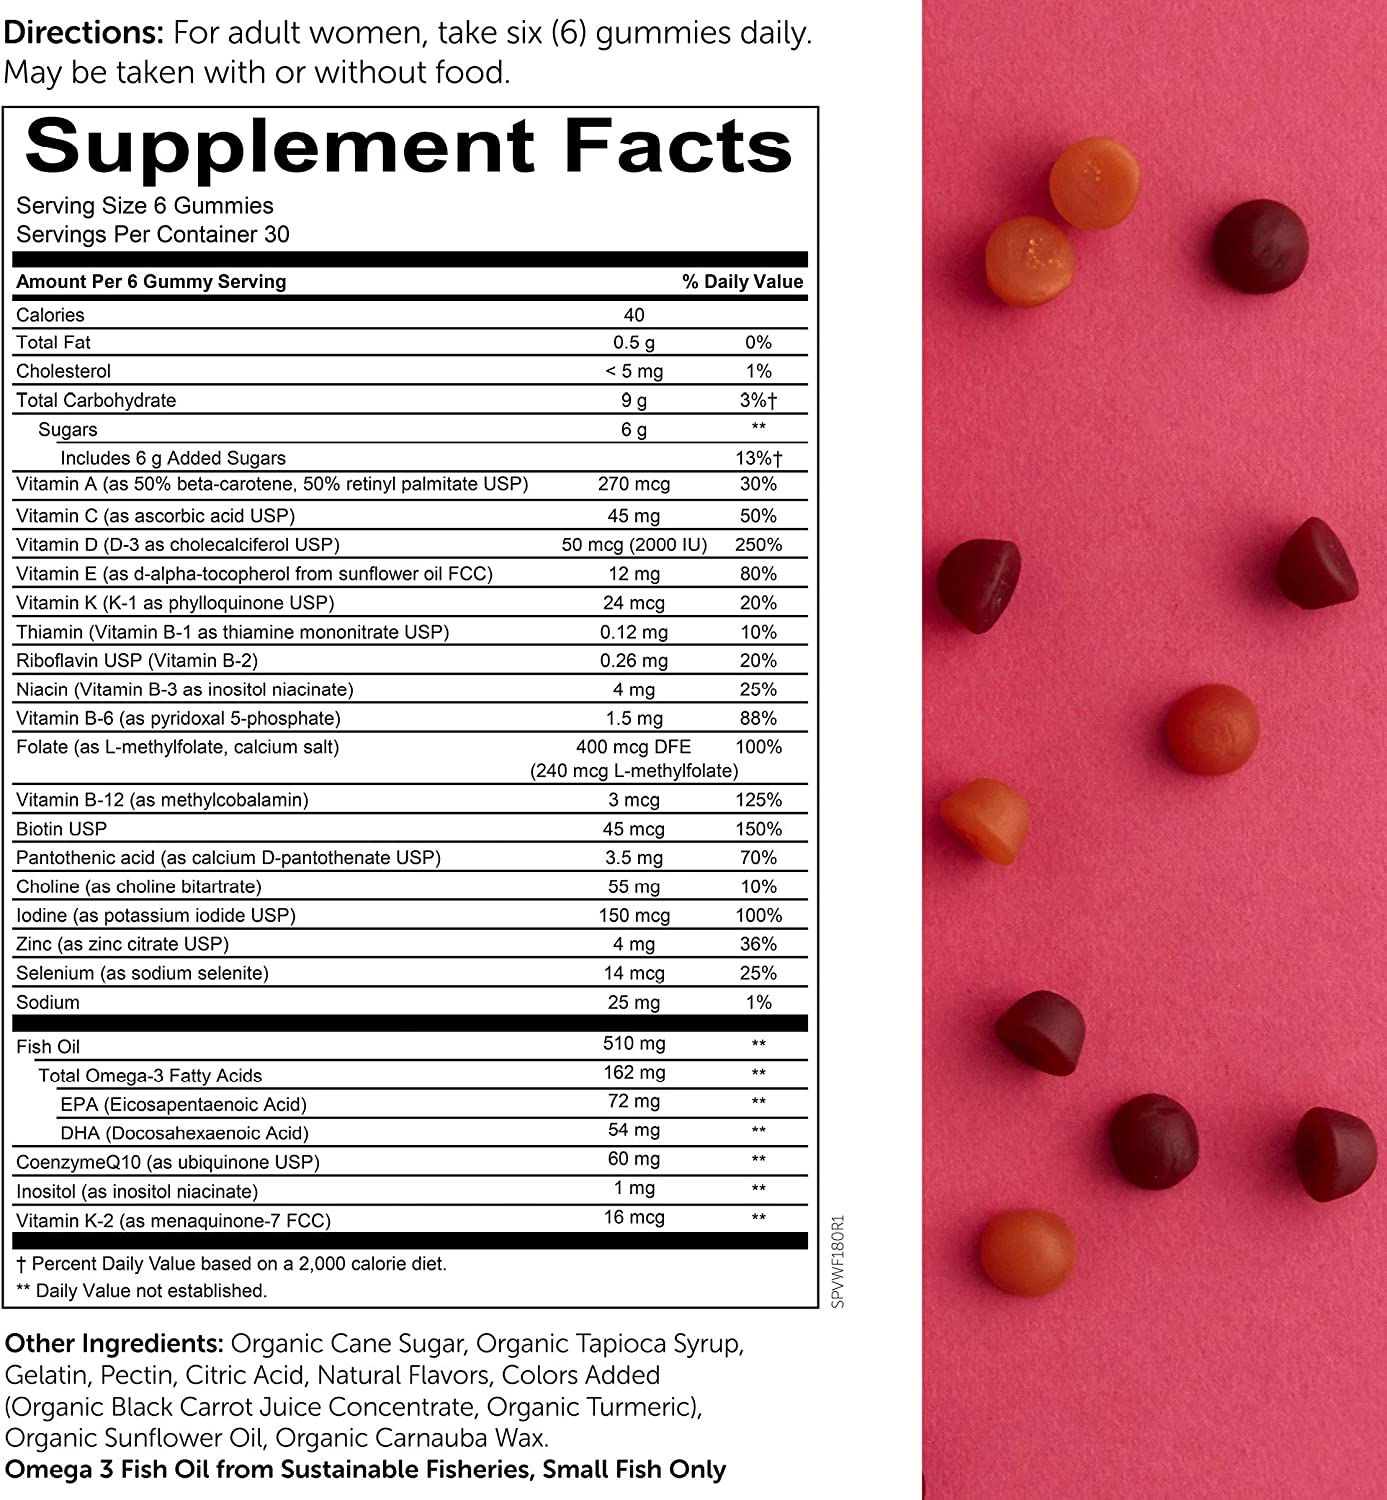 SmartyPants Women s Formula Daily Gummy Vitamins Gluten Free, Multivitamin Omega 3 Fish Oil DHA EPA , Methyl B12, Vitamin D3, Vitamin B6, 180 Count 30 Day Supply – Packaging May Vary